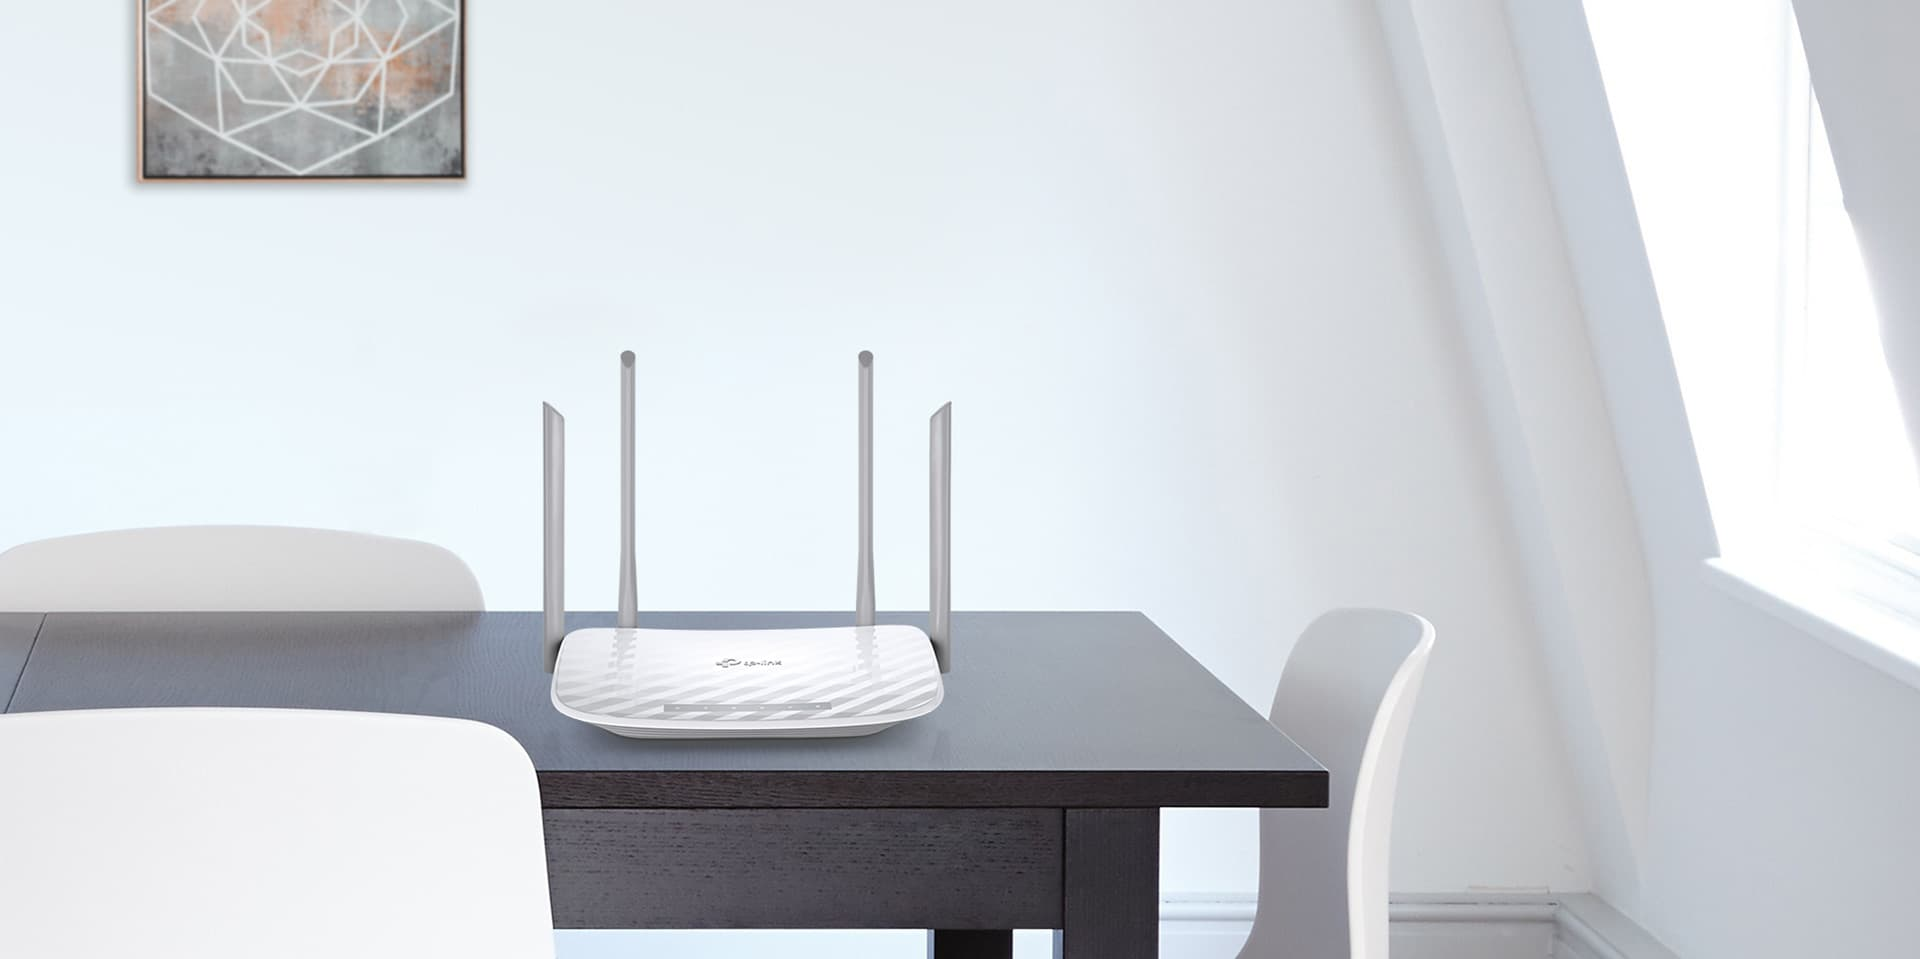 TP-LINK Archer C50 on a tabletop in a modern home setting